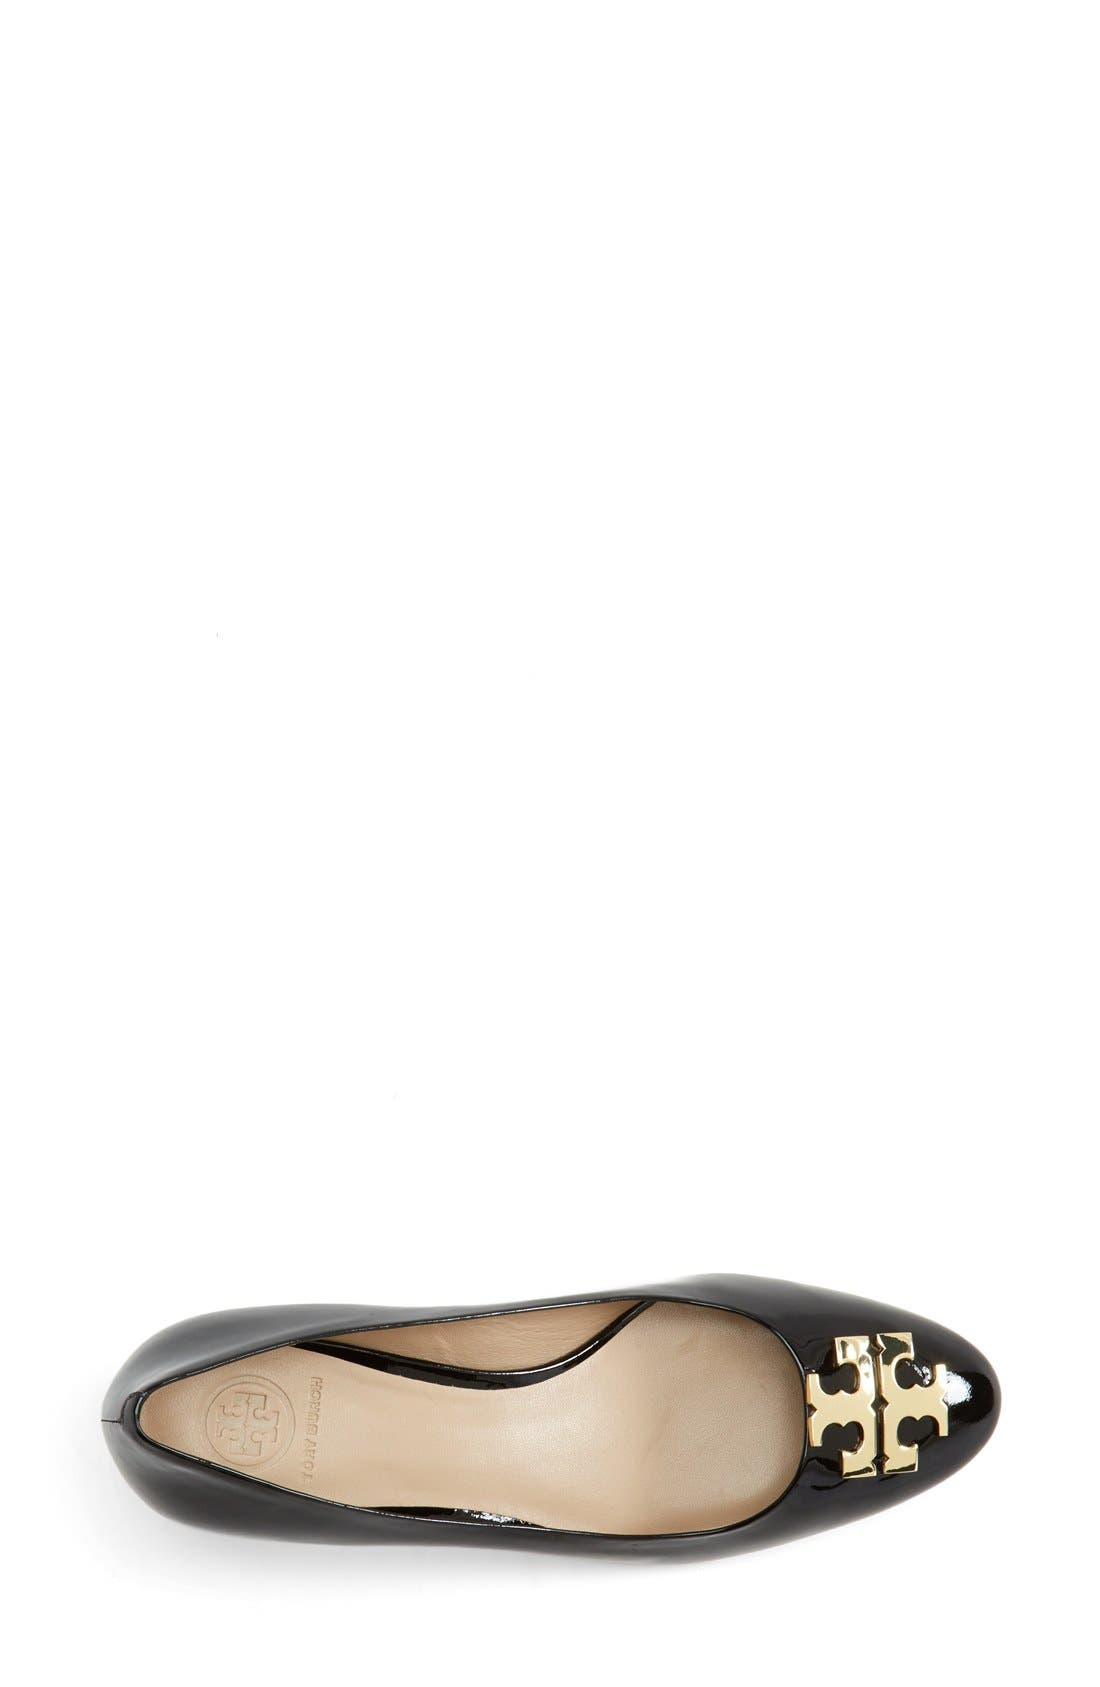 Alternate Image 3  - Tory Burch 'Raleigh' Patent Leather Pump (Women)